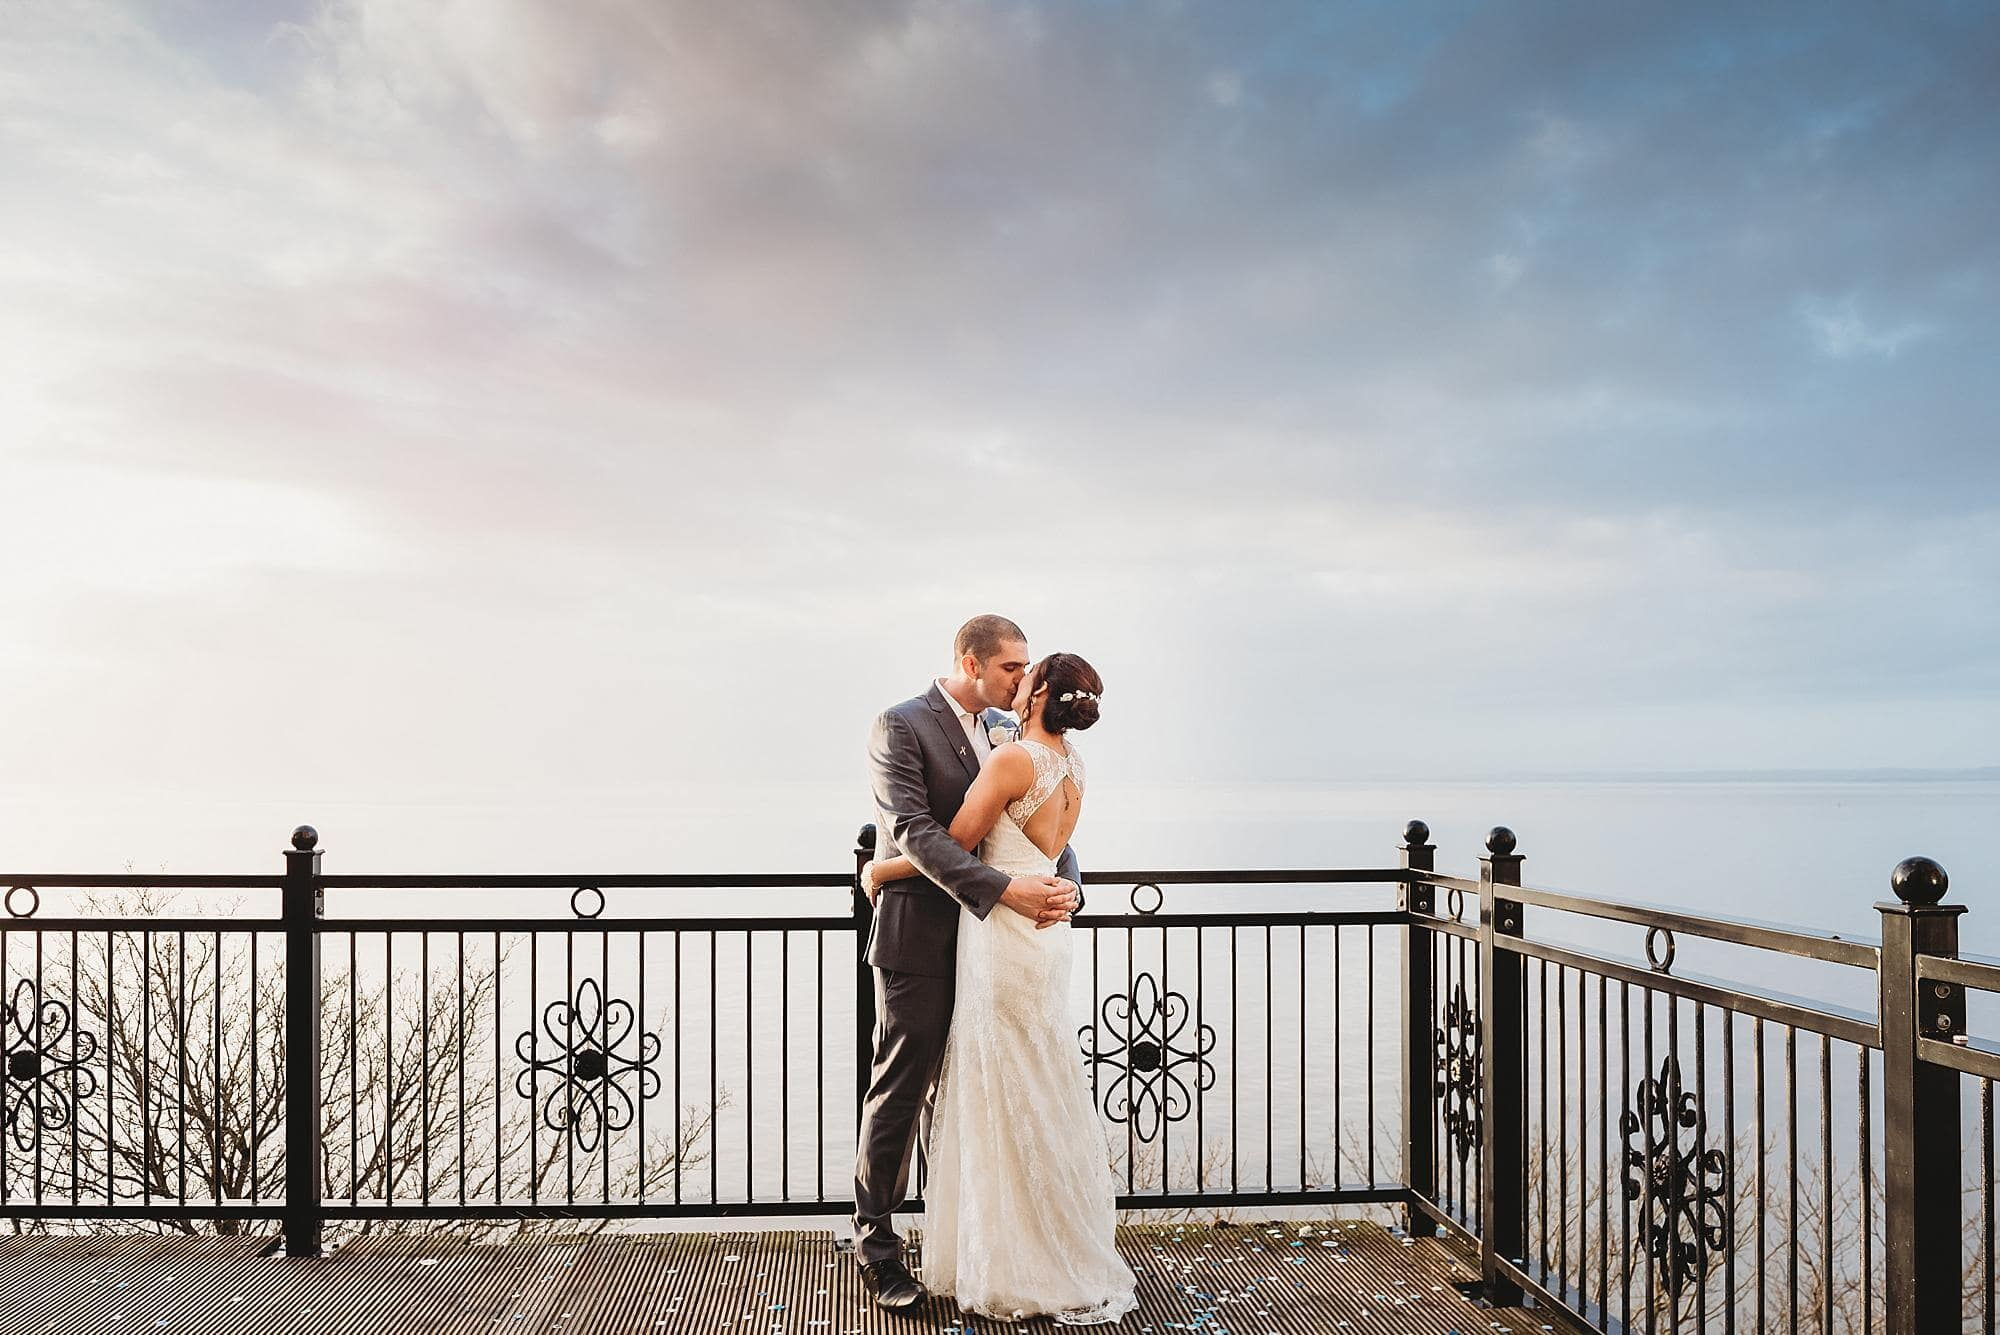 Bride & groom kissing on the balcony of Walton Park hotel over looking the Water at Cleavdon